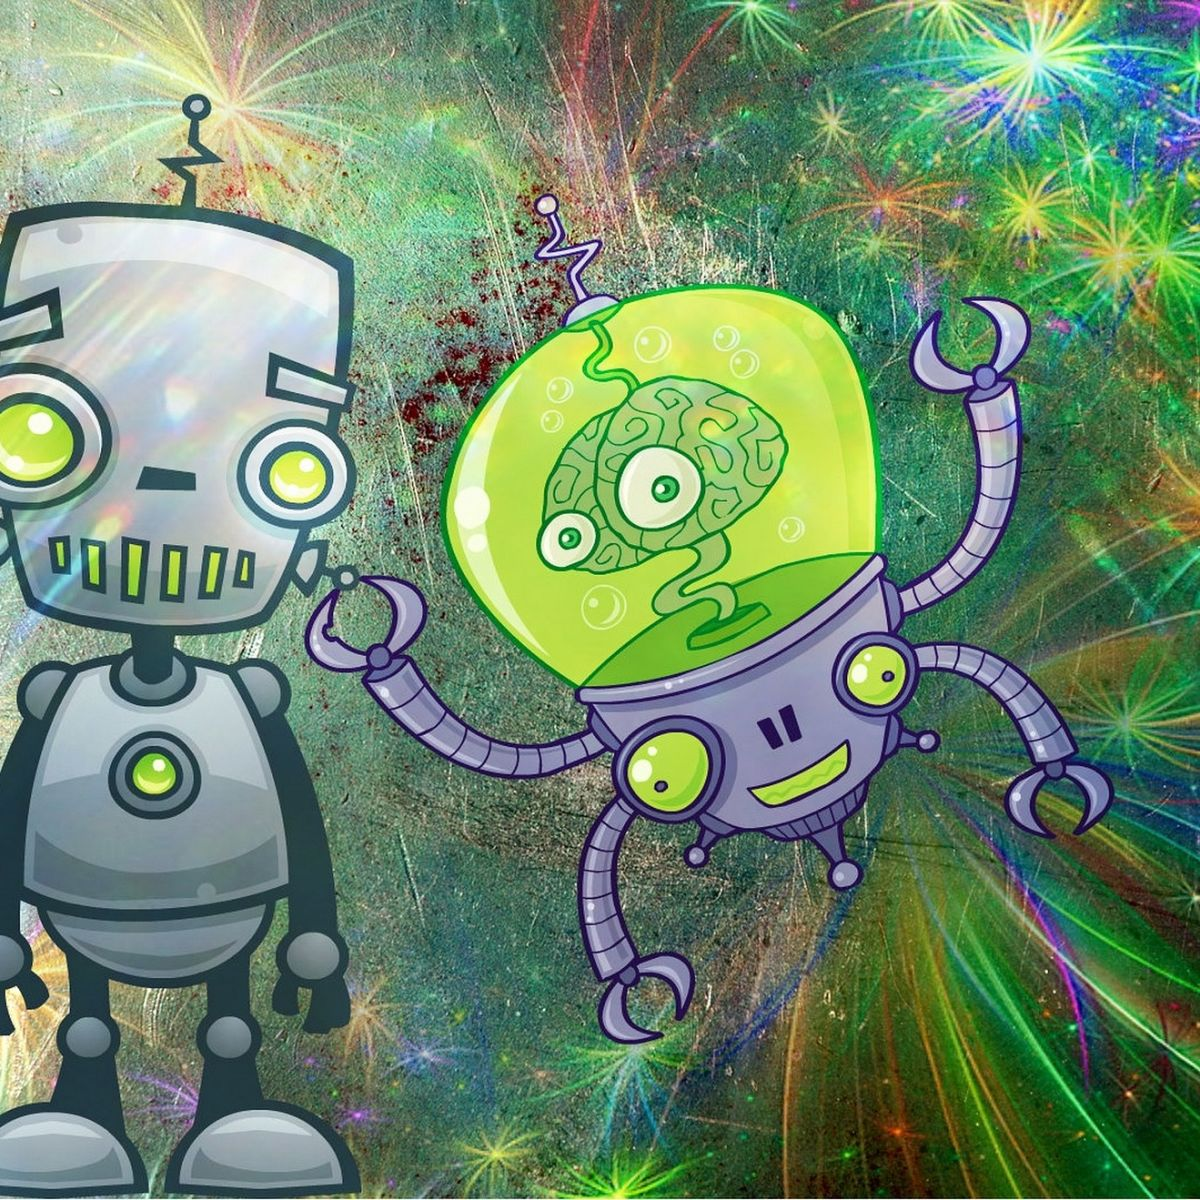 Robots, alien, psychedelic, space, cute